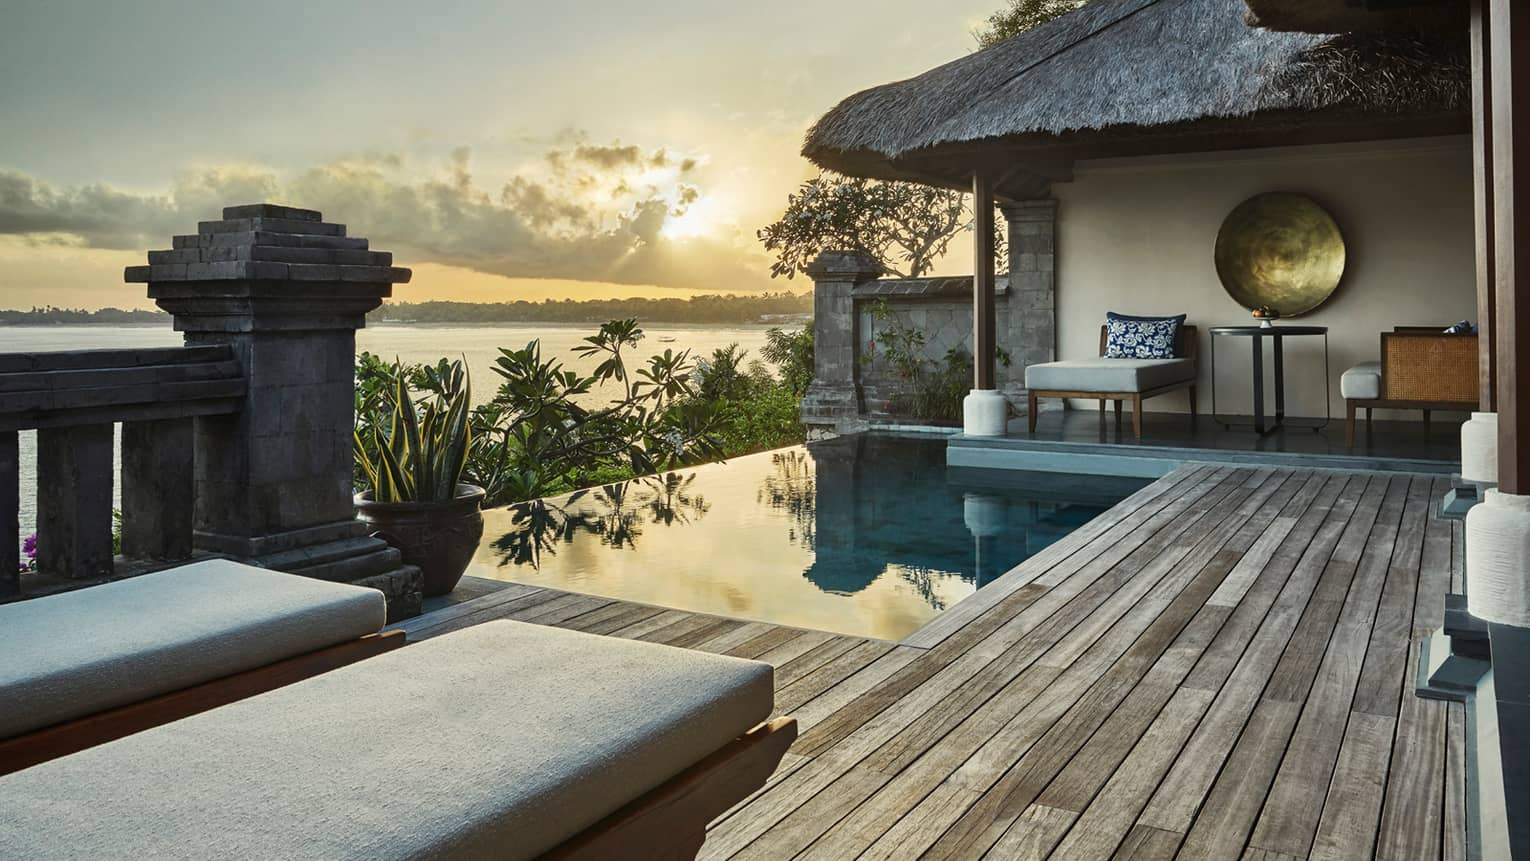 Ocean sunset reflecting on private villa swimming pool, palm trees, thatched roof, lounge chairs